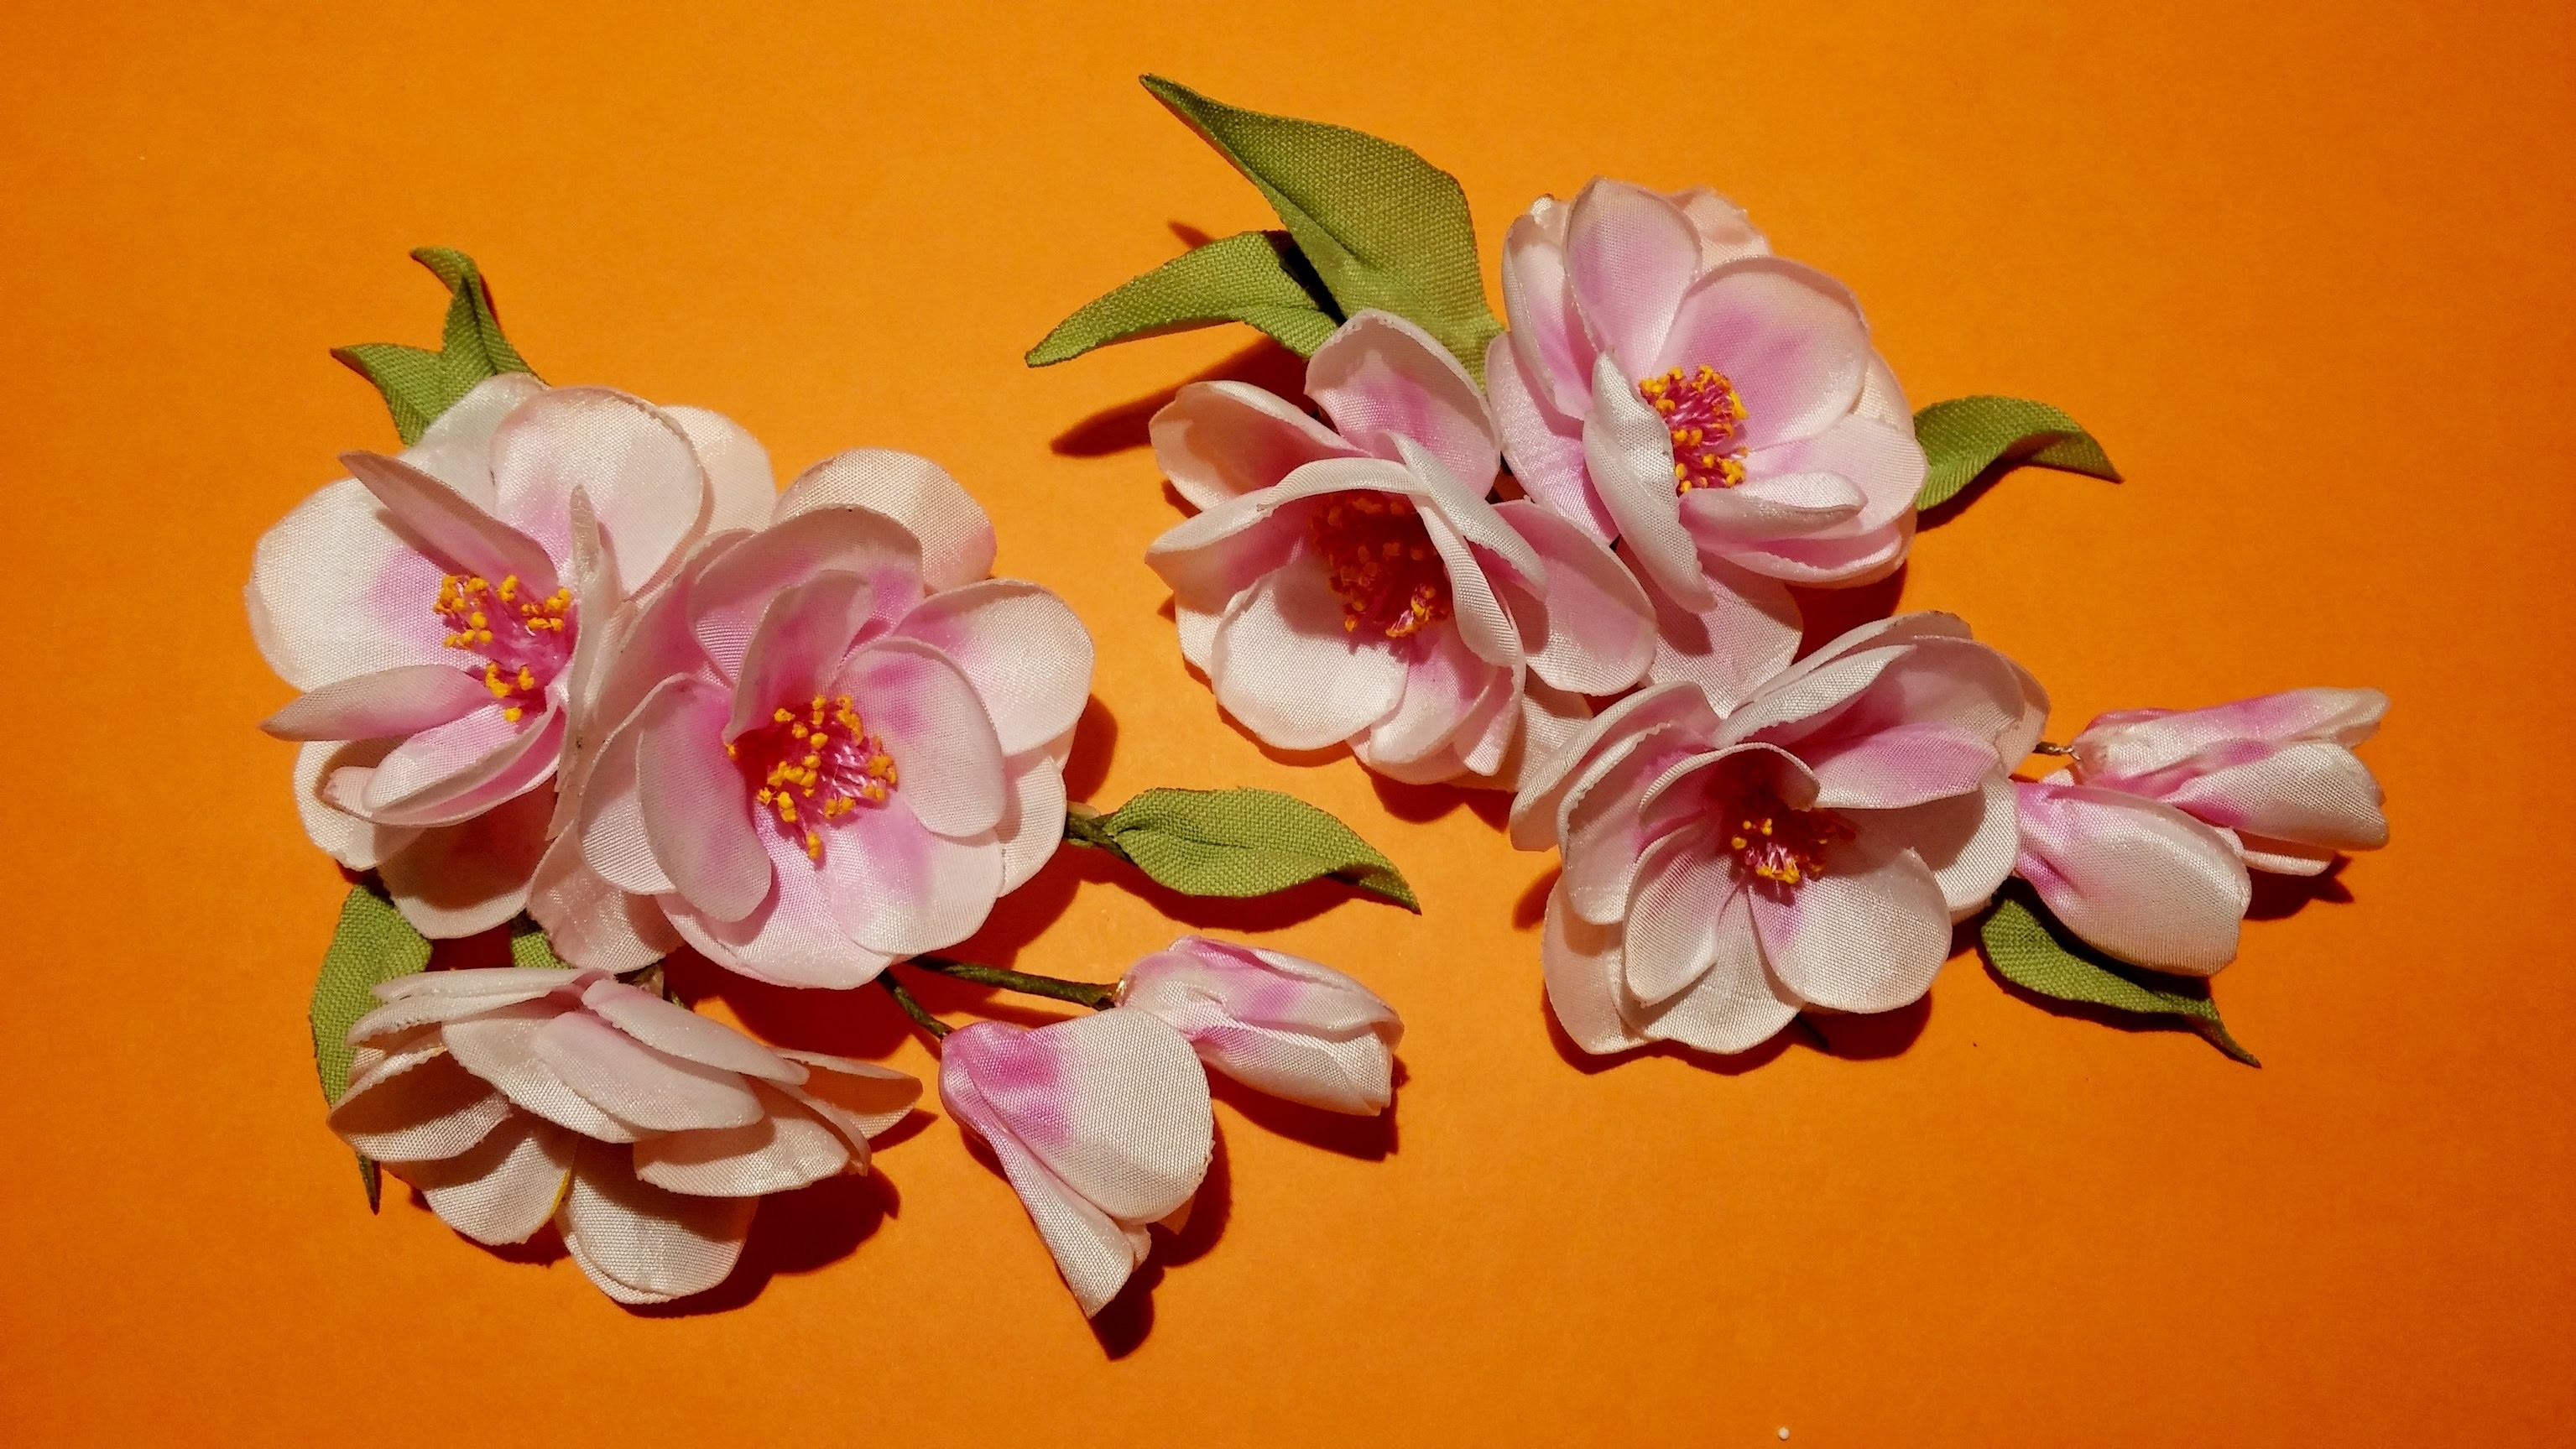 Fabric flowers how to make: sprig of cherry blossoms.цветы из ткани: веточка сакуры